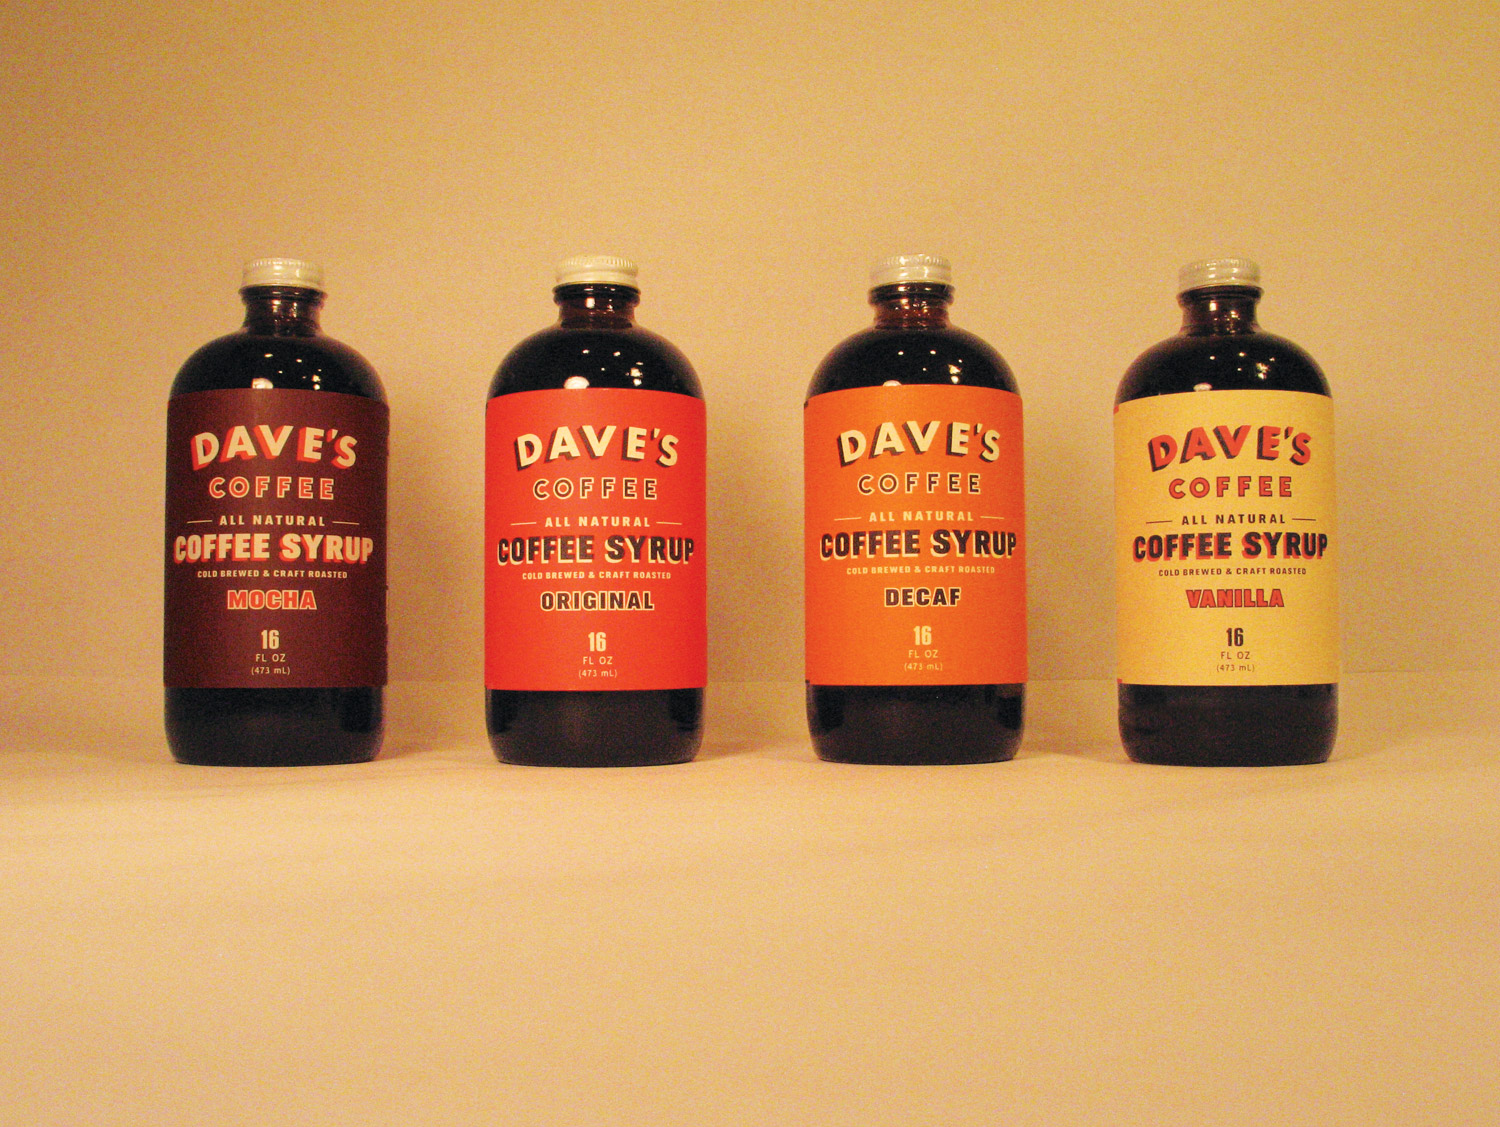 Daves-Coffee-Syrup-Packaging-011.jpg